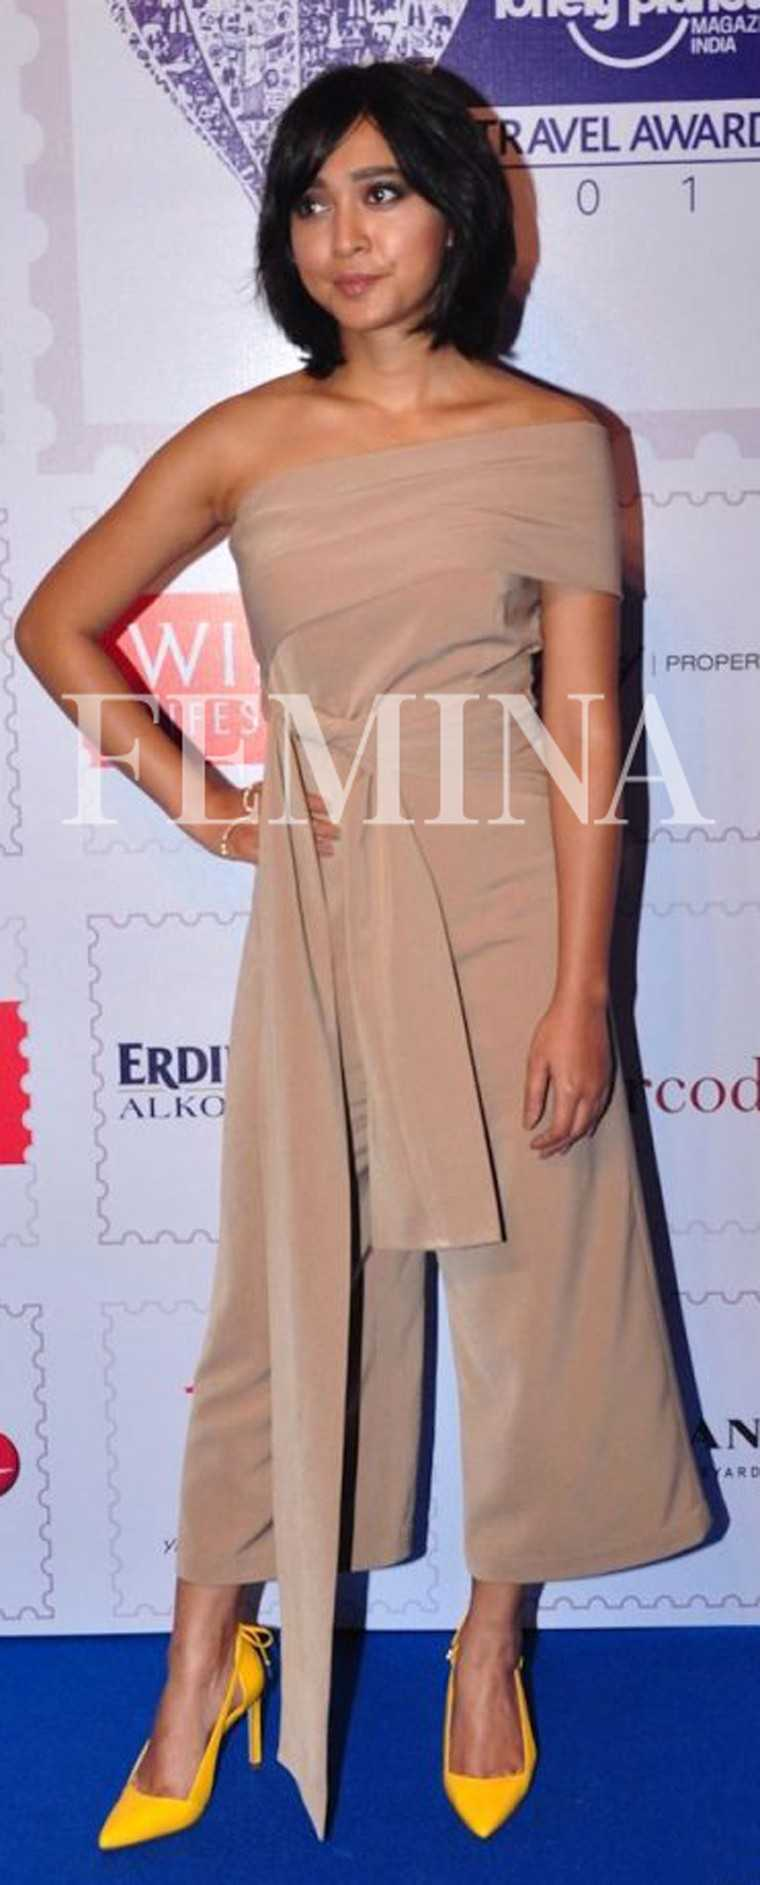 Sayani Gupta – Sayani's beige outfit teamed with bright yellow pumps made for a classy choice. The nude lips complemented the look.